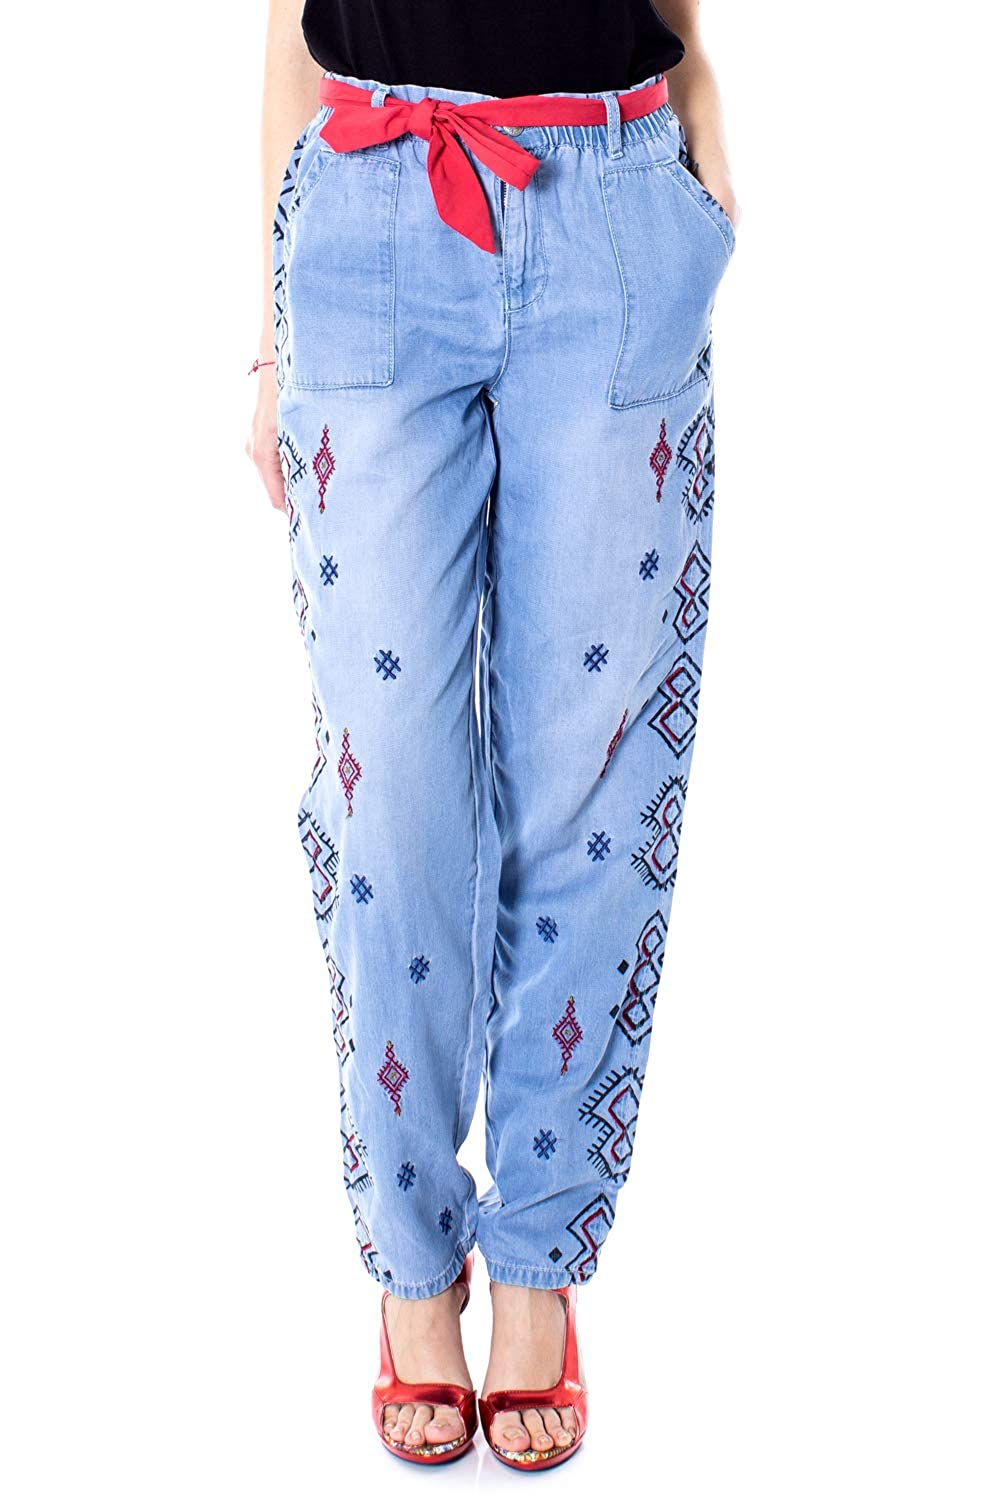 Desigual Women's Denim_mekane